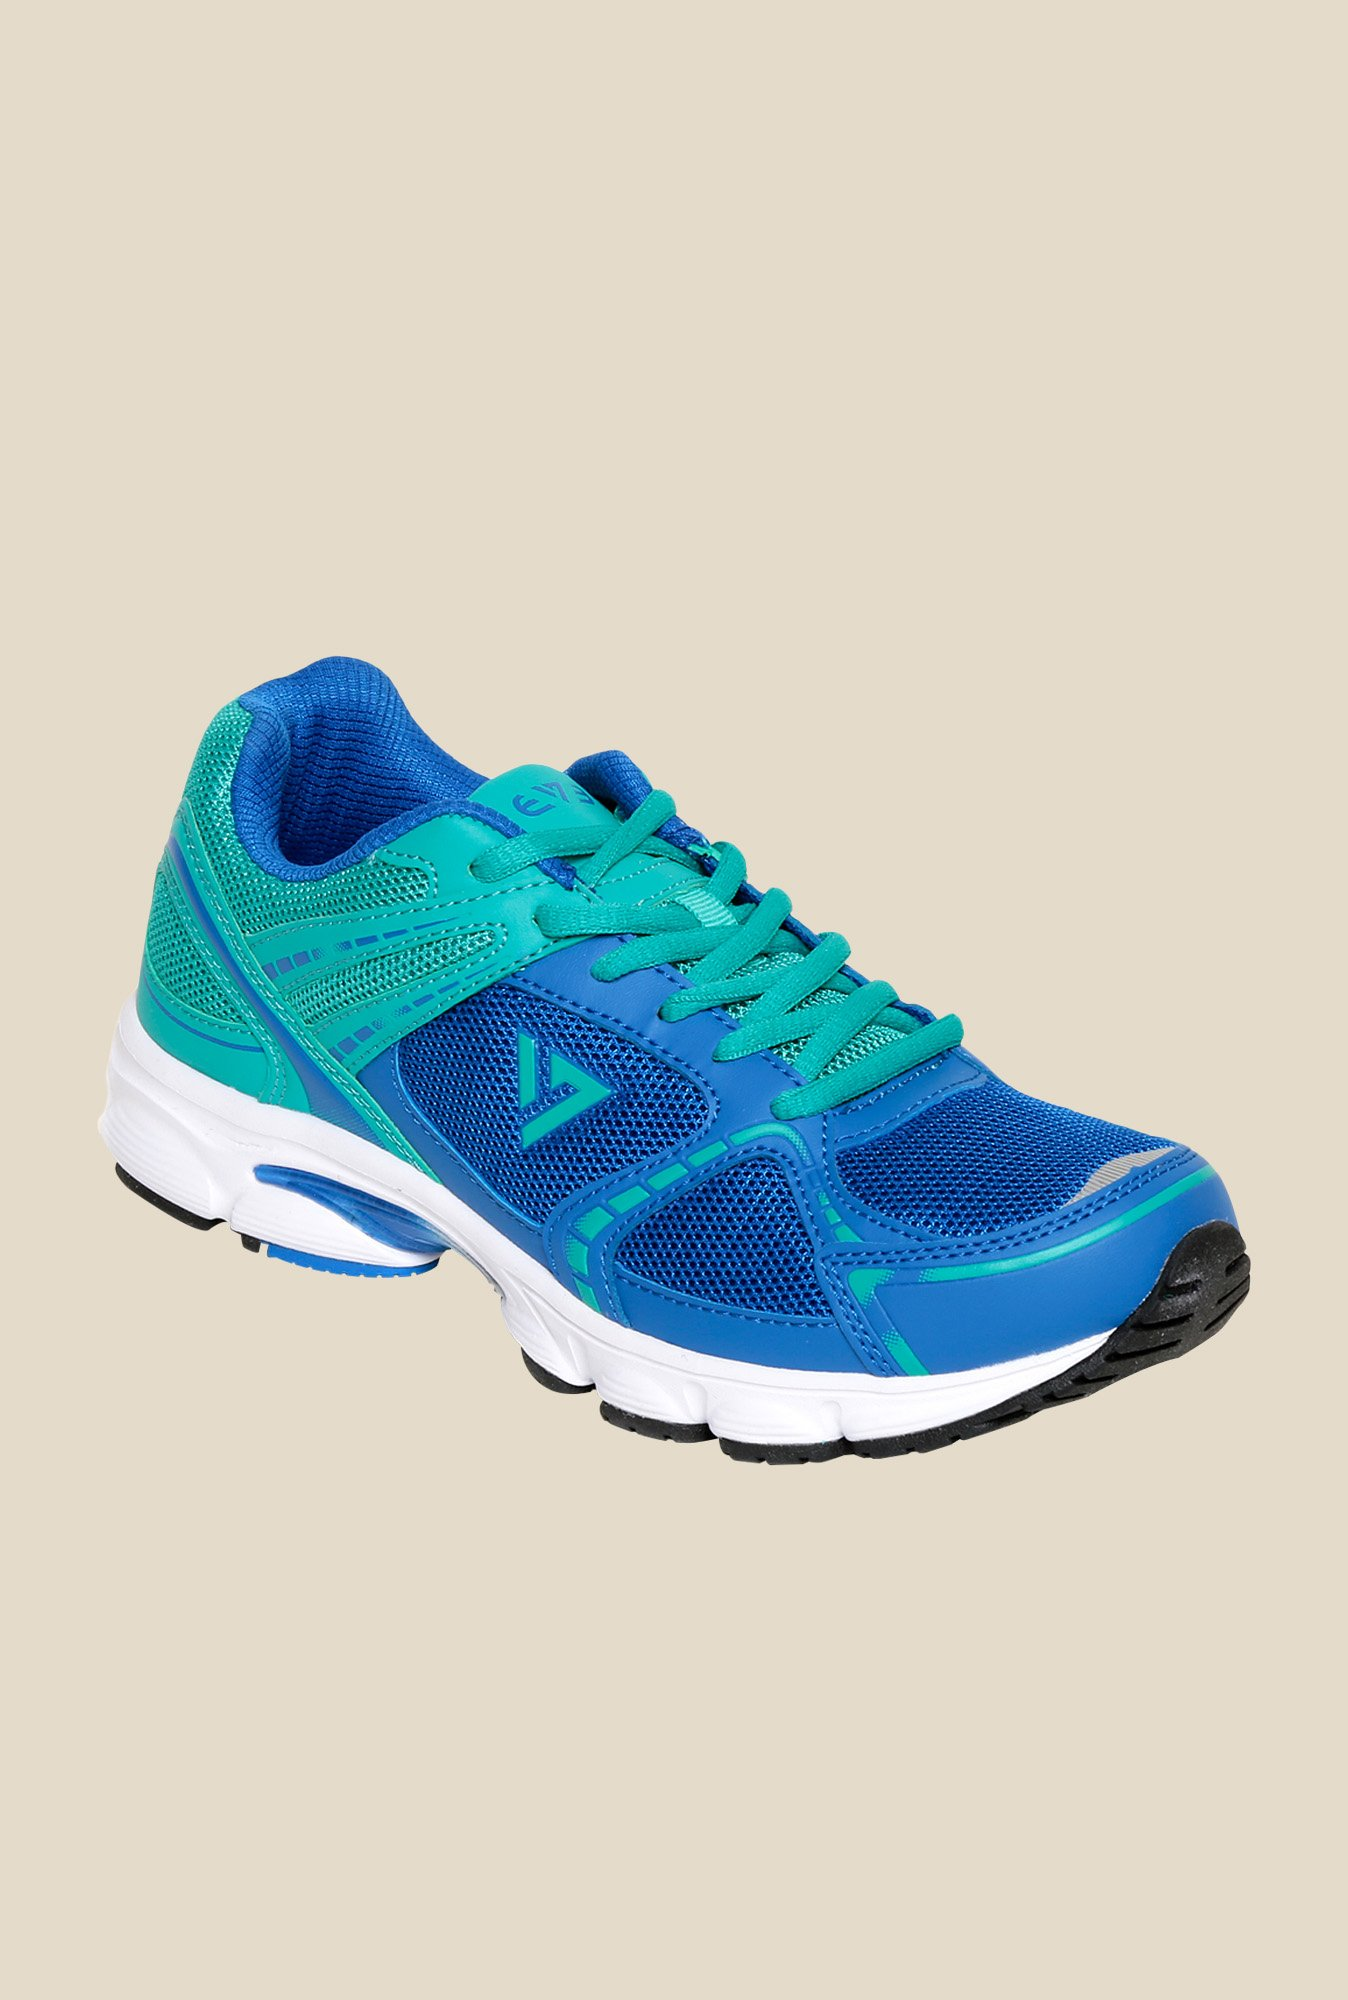 Seven Aztec Nautical Blue & Ceramic Running Shoes